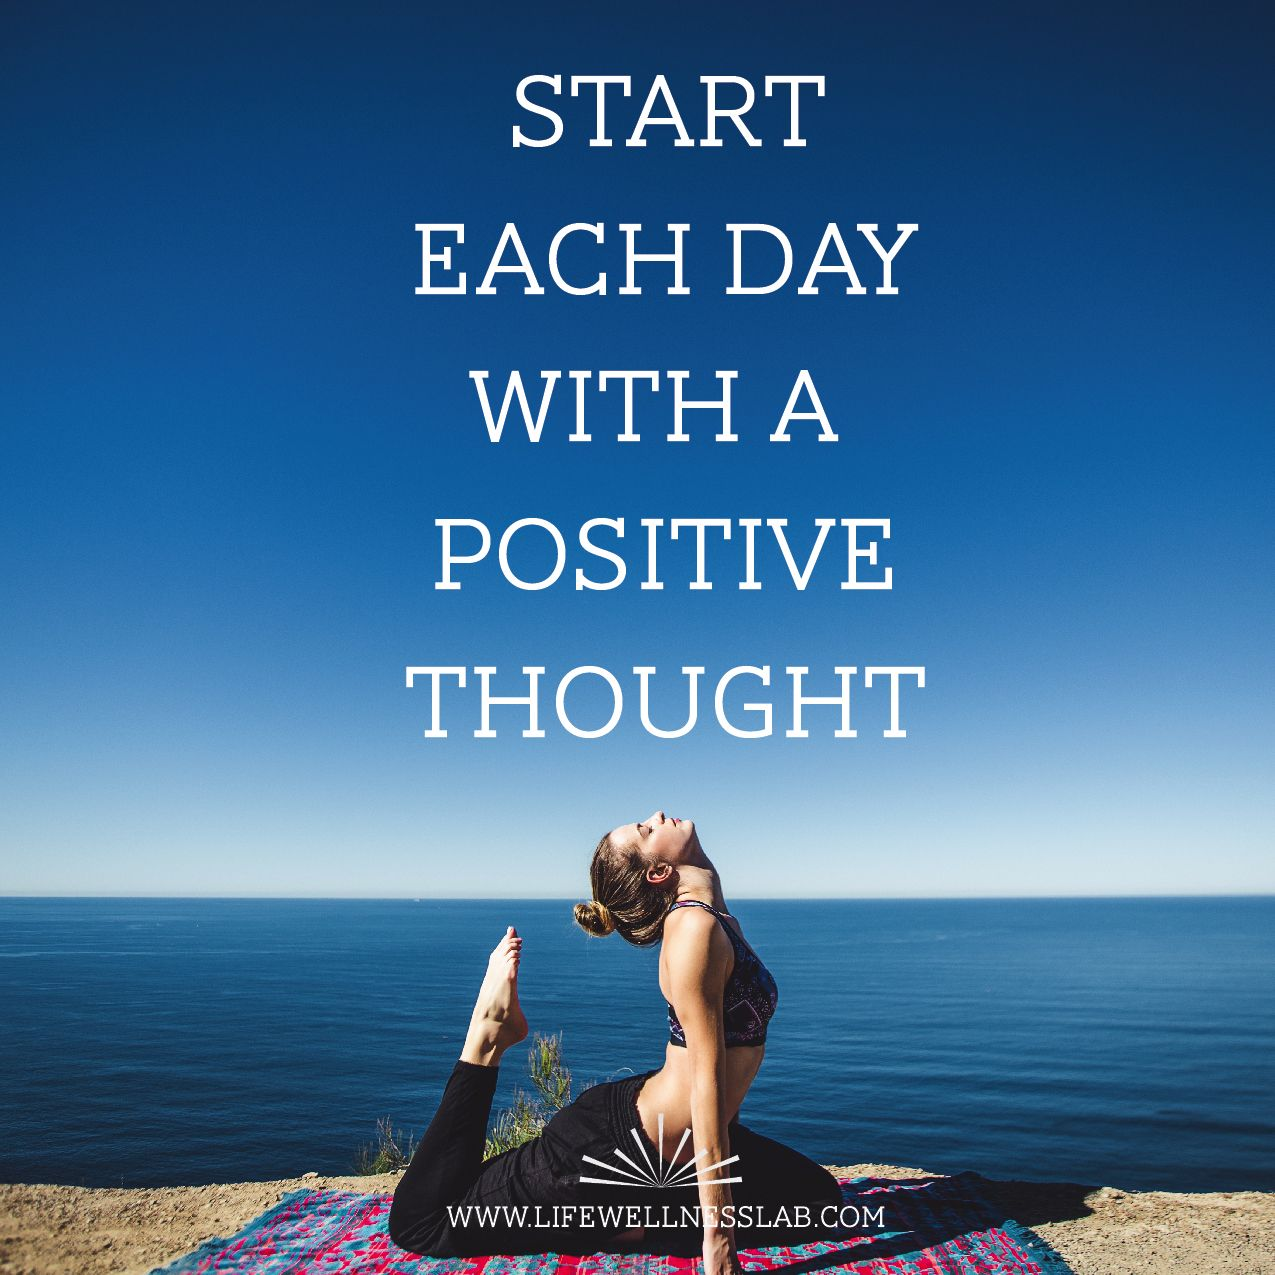 Inspirational Day Quotes: Start Each Day In A Positive Way! Positive Thought